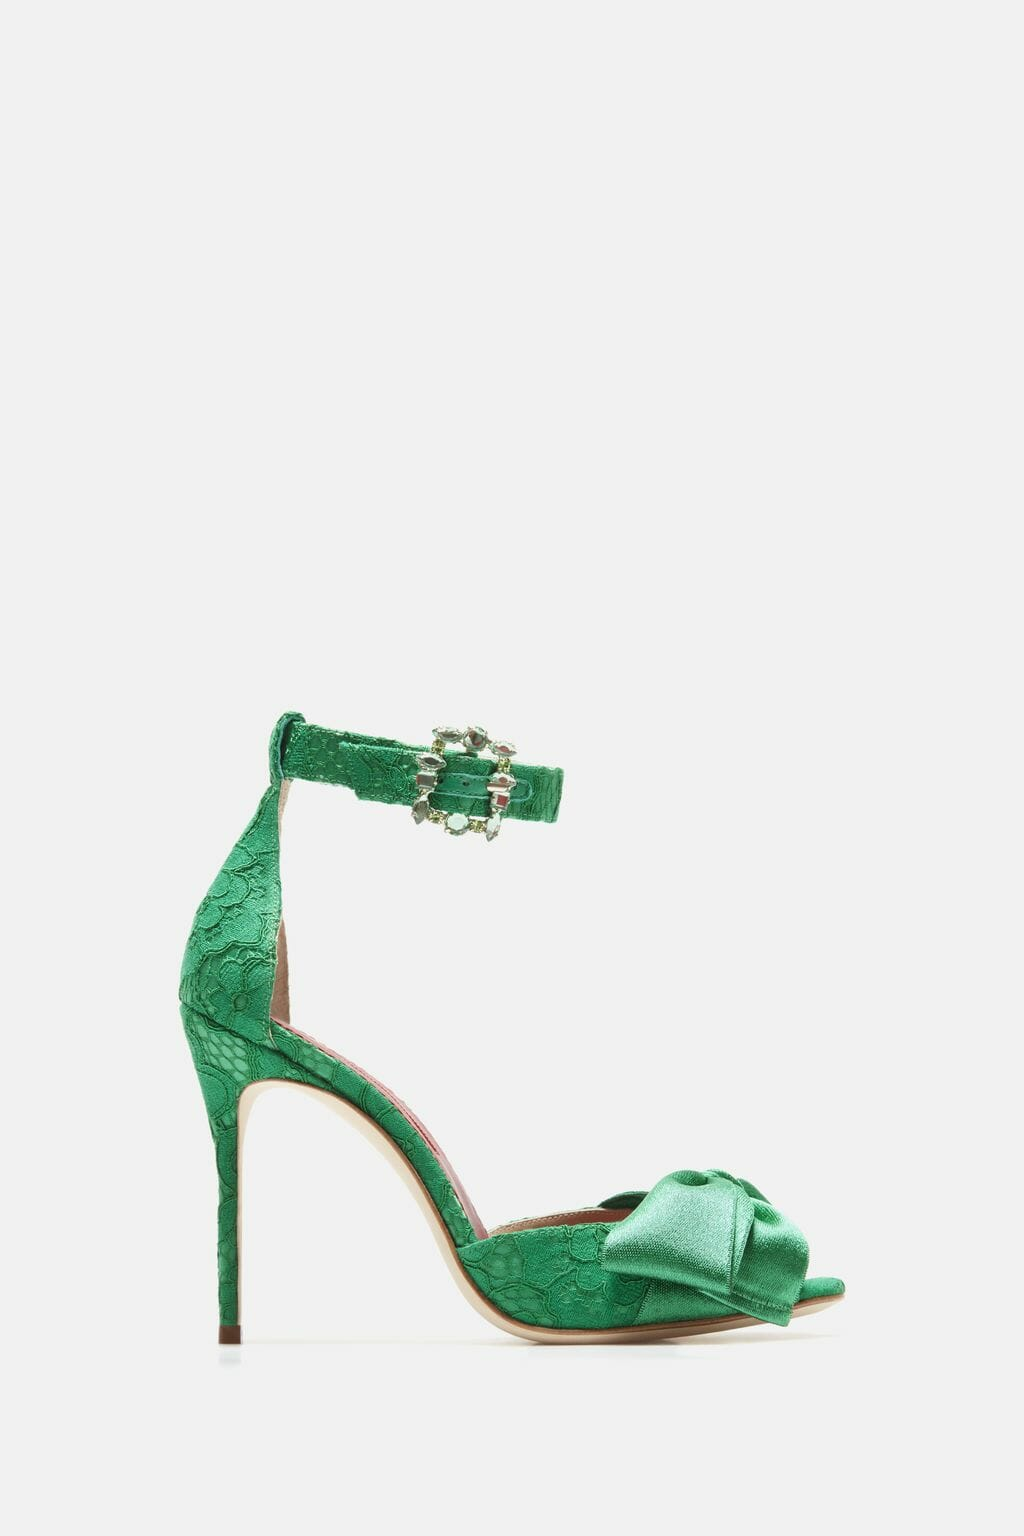 CH-Carolina-herrera-shoes-collection-Spring-Summer-2018-shoe-13